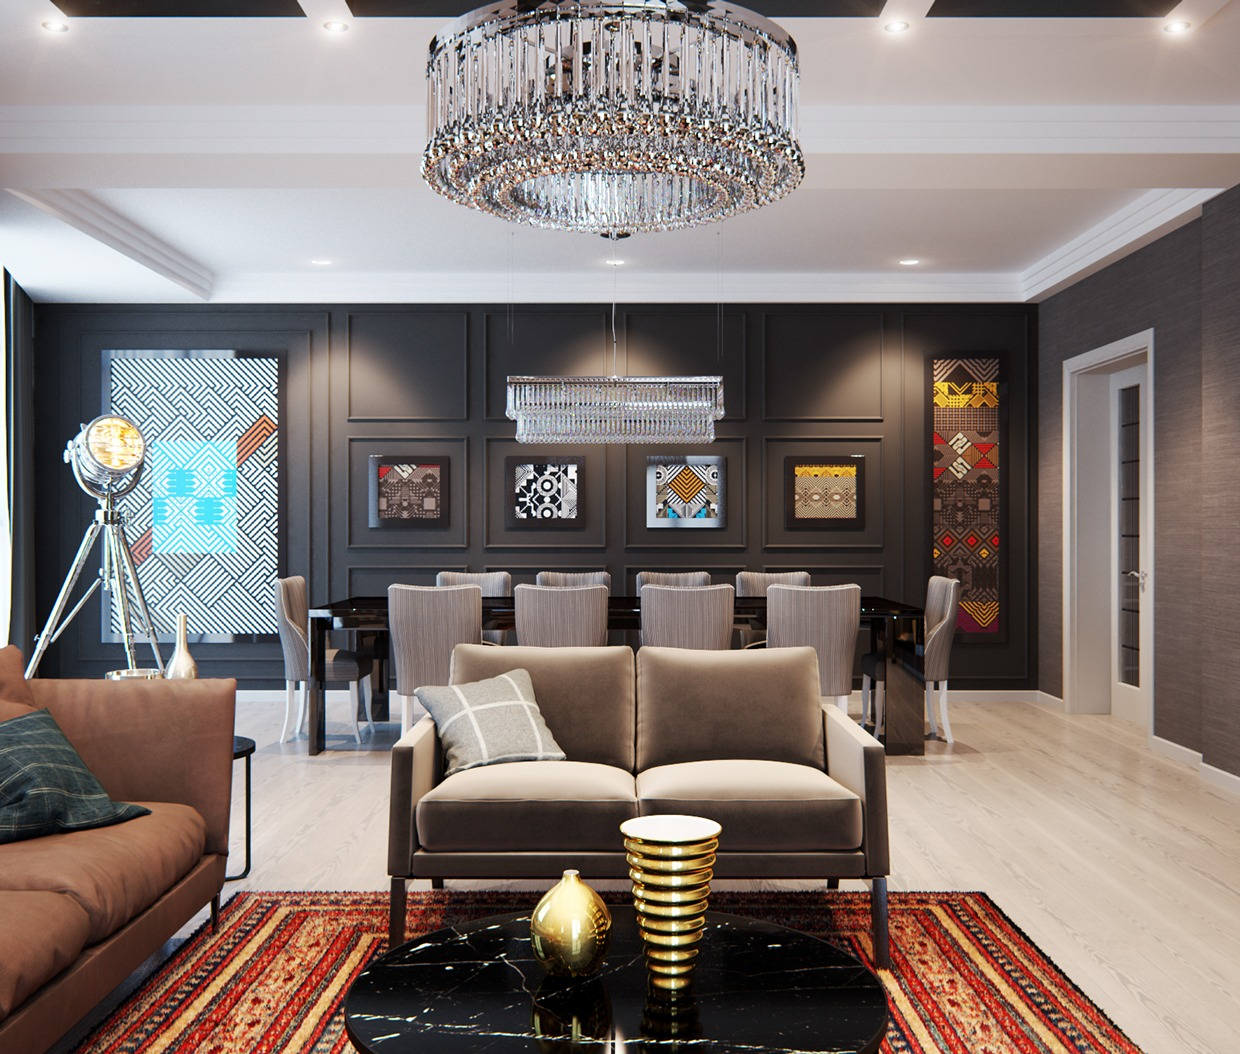 Home Interior Design Ideas Hyderabad: A Modern Interior Home Design Which Combining A Classic